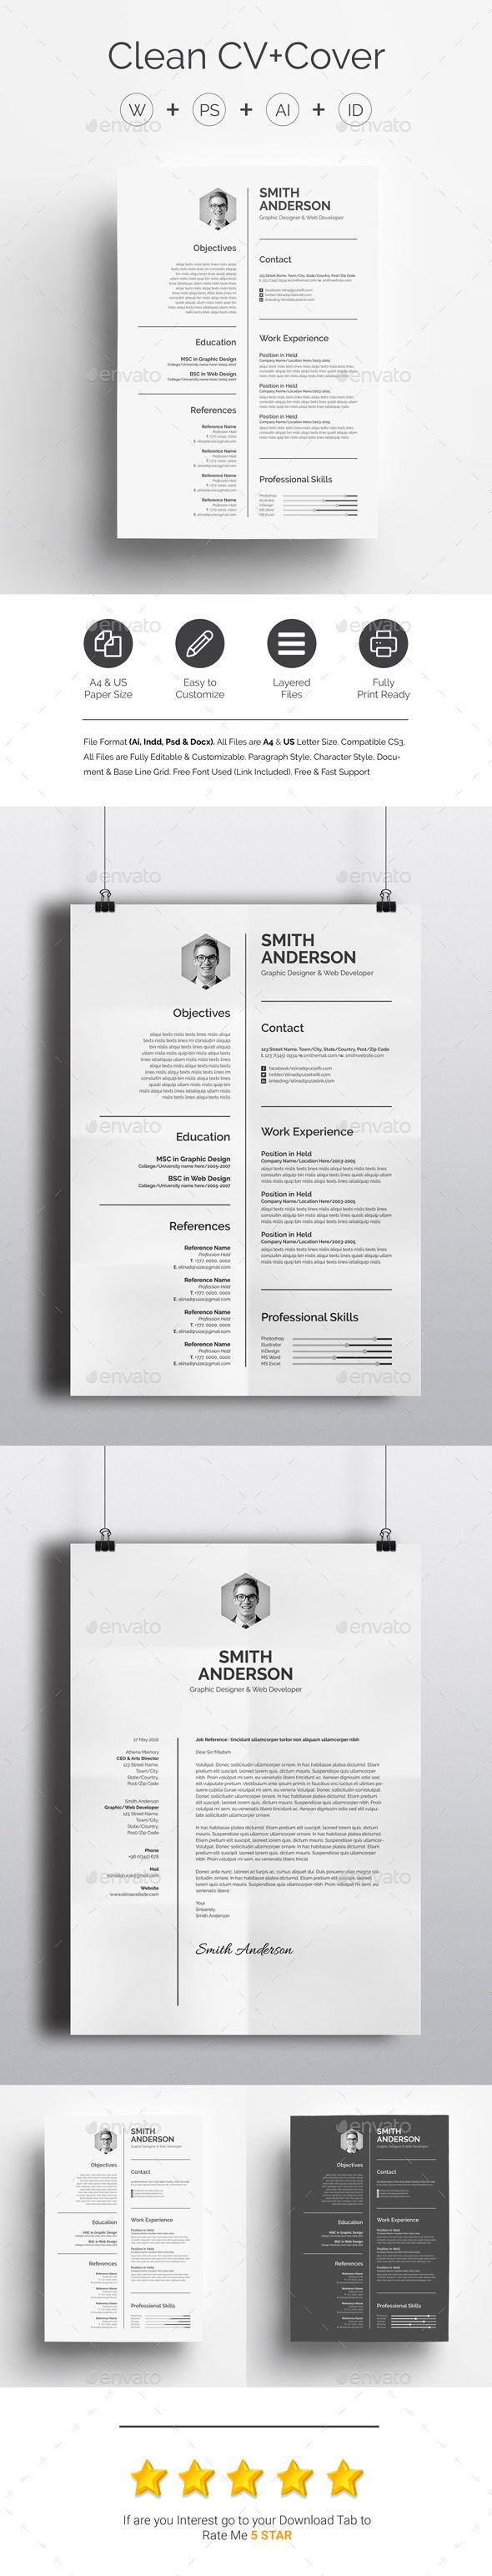 57 best CV images on Pinterest | Creative curriculum, Page layout ...